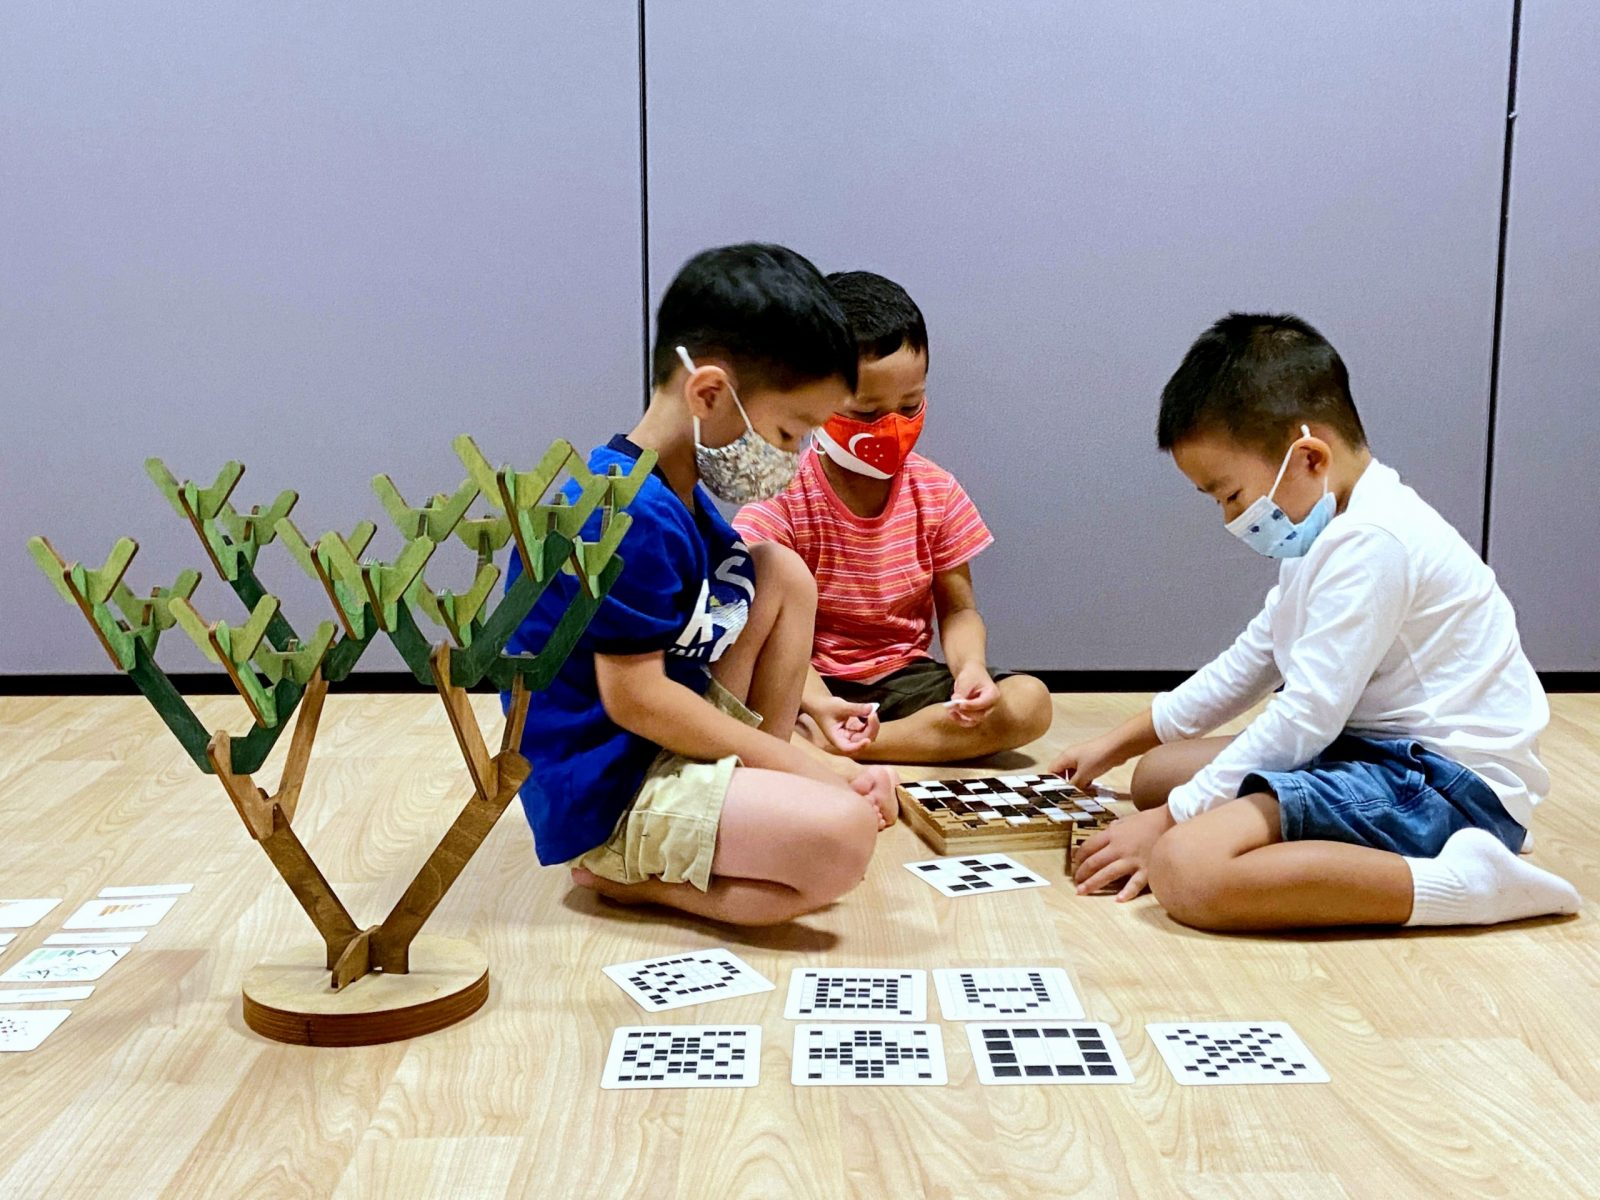 Junior Coders Programme Preschoolers playing with Learning Beautiful Montessori Screen-Free Toys